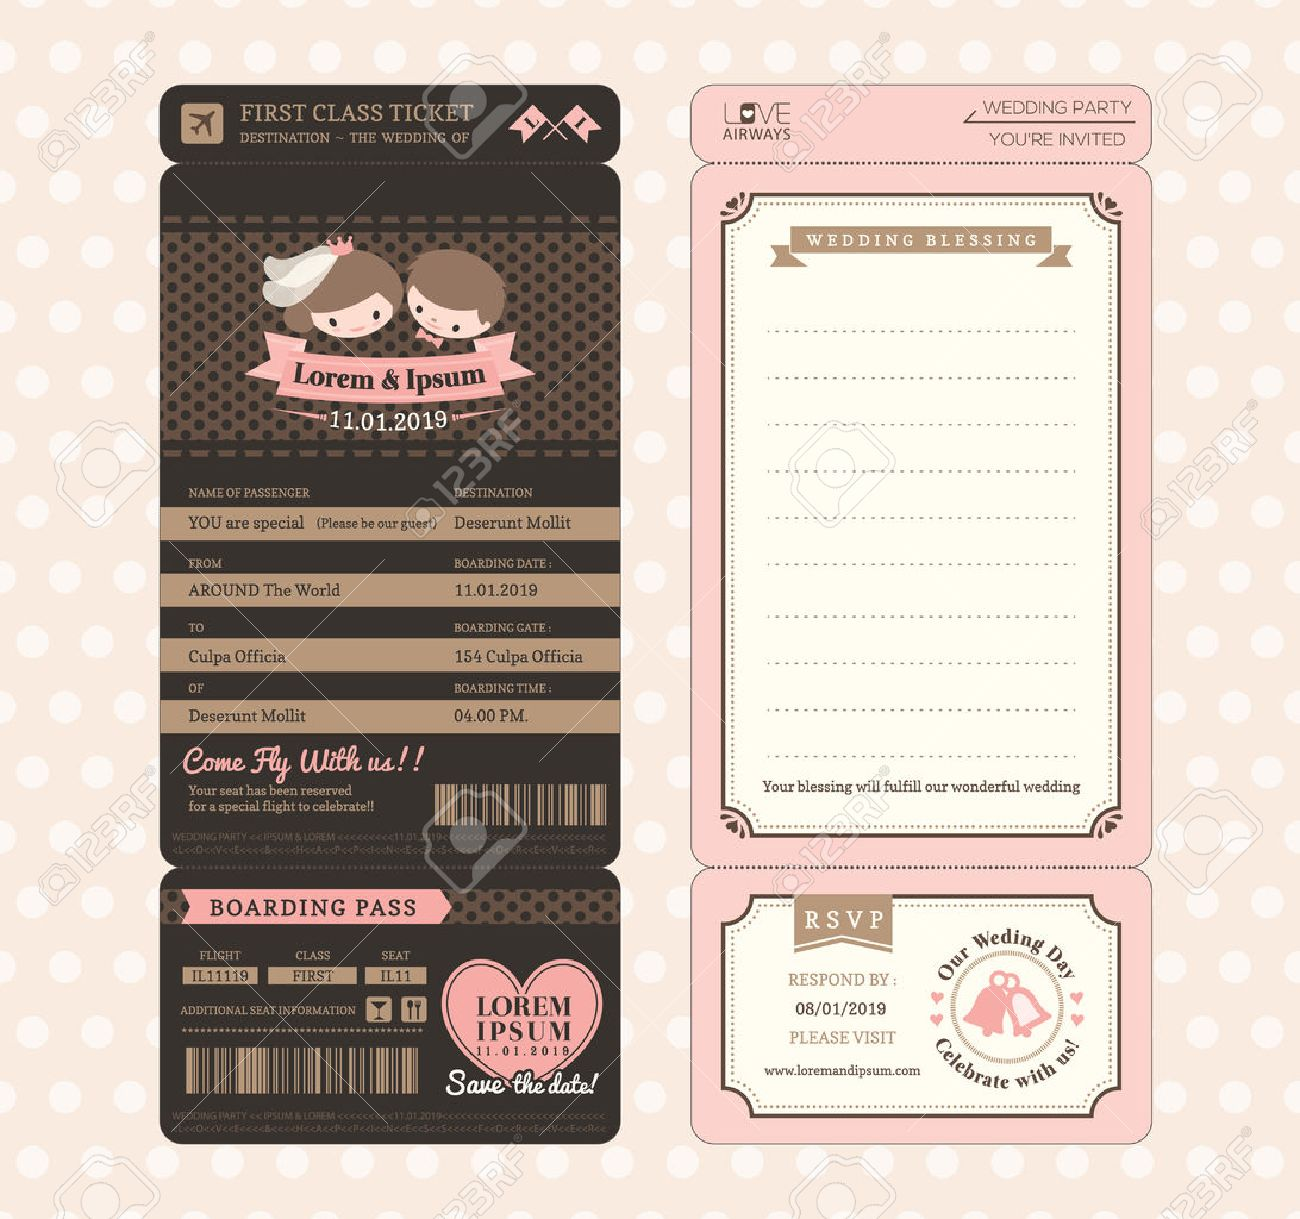 Cute groom and bride vintage boarding pass ticket wedding cute groom and bride vintage boarding pass ticket wedding invitation design template vector stock vector stopboris Image collections